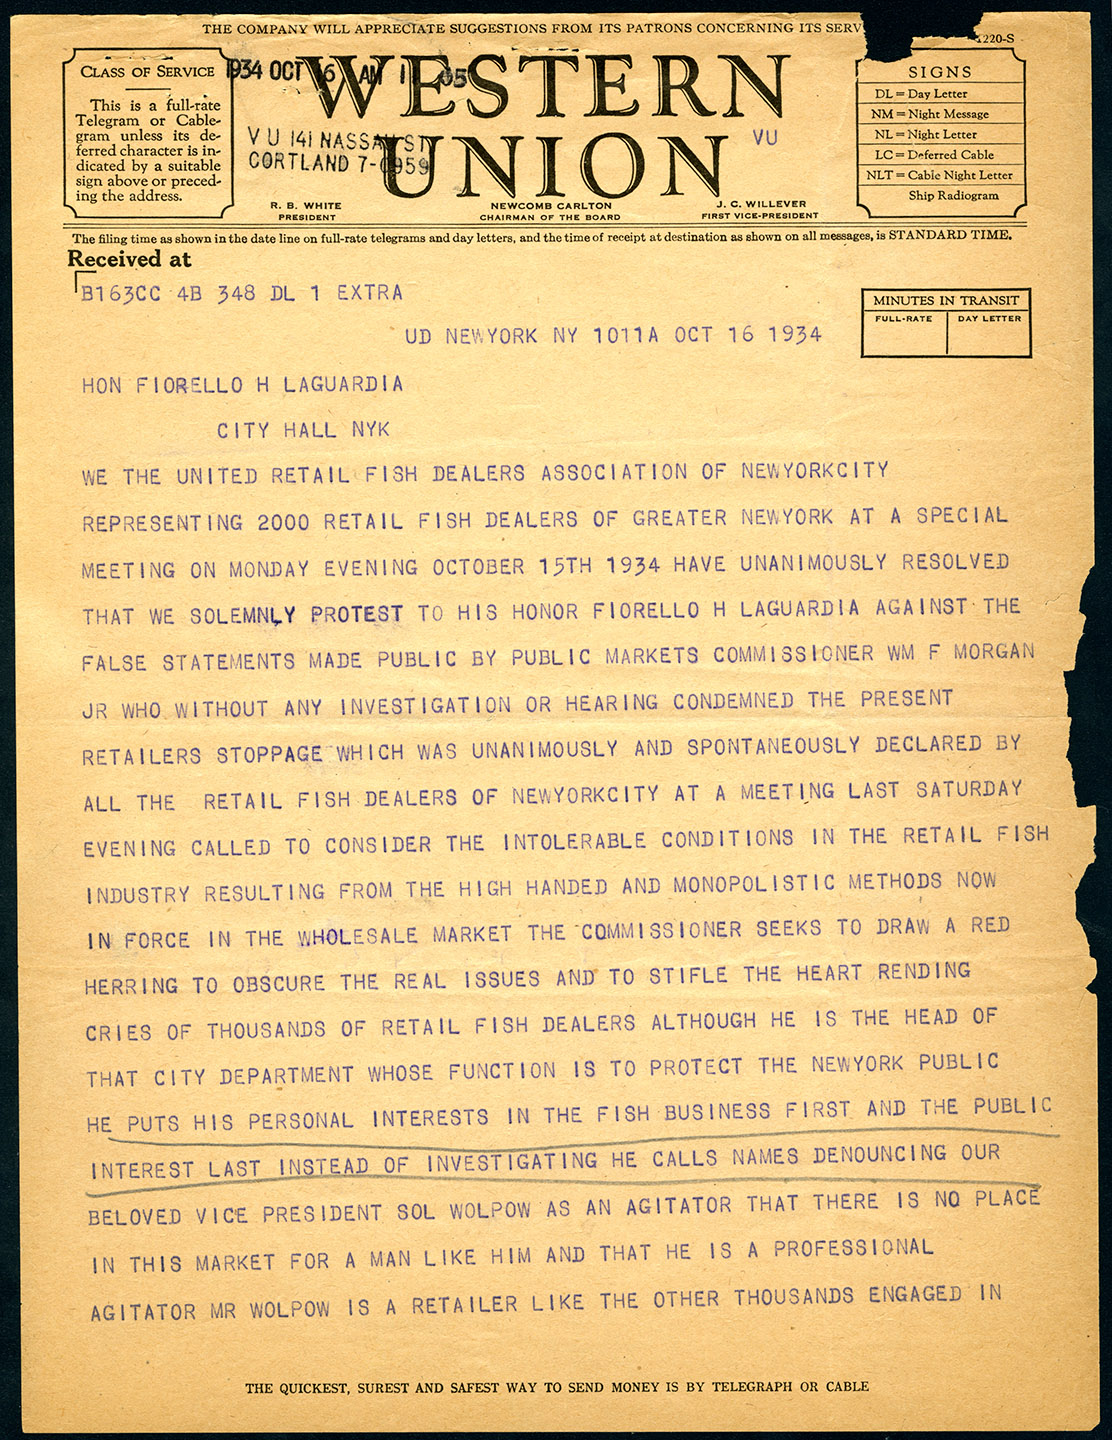 Telegram to Mayor LaGuardia from the United Retail Fish Dealers Assoc. Oct. 16, 1934. Mayor LaGuardia Collection, NYC Municipal Archives.